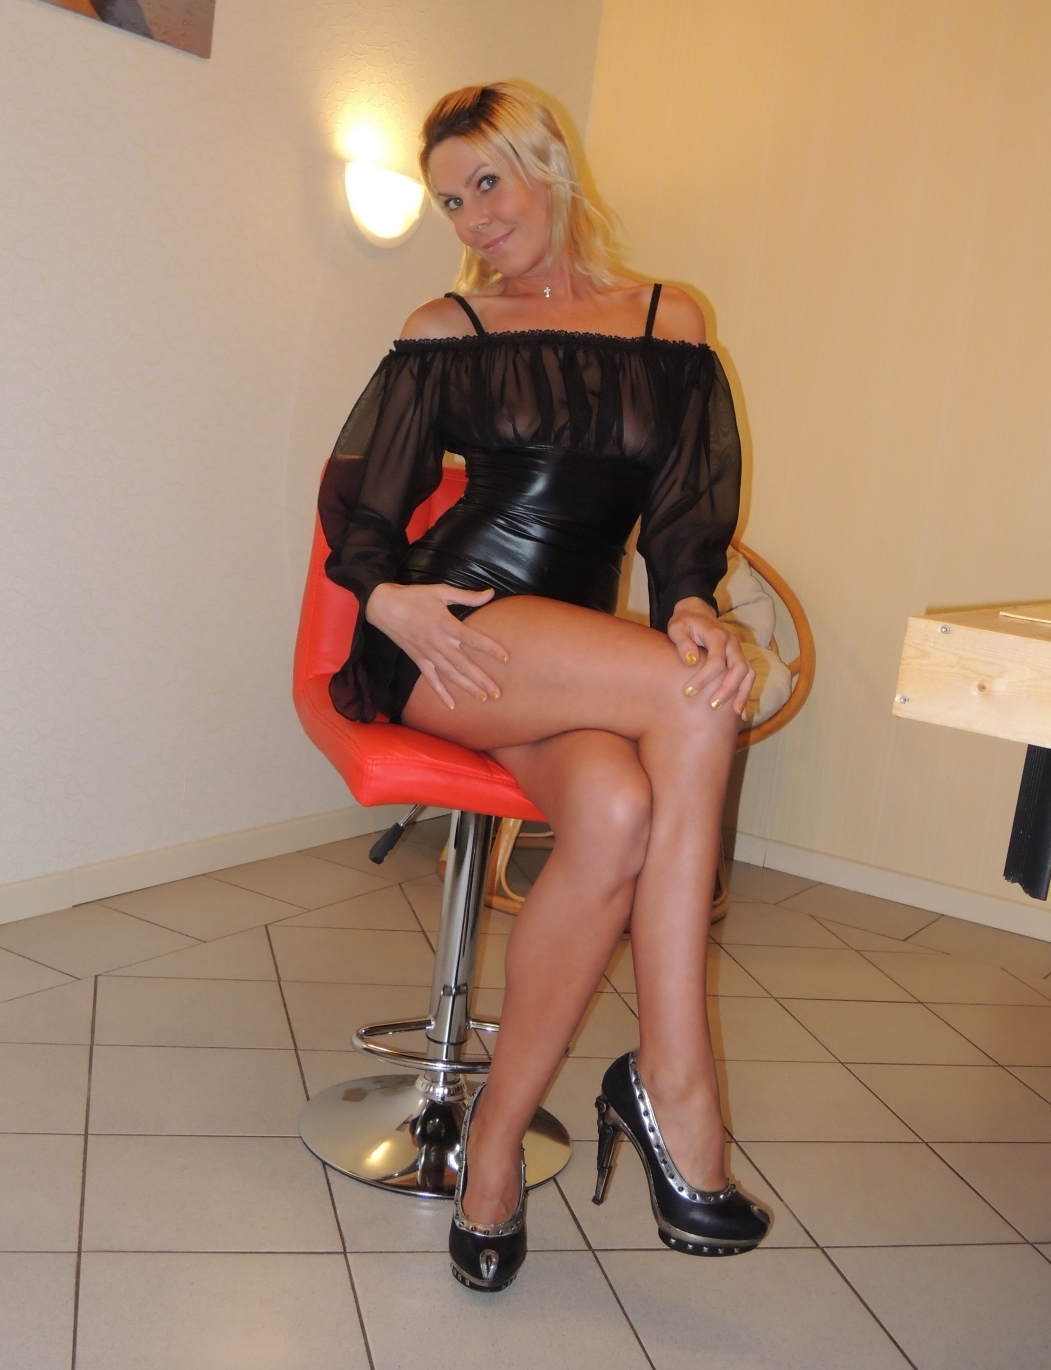 sexes video wannonce maine et loire